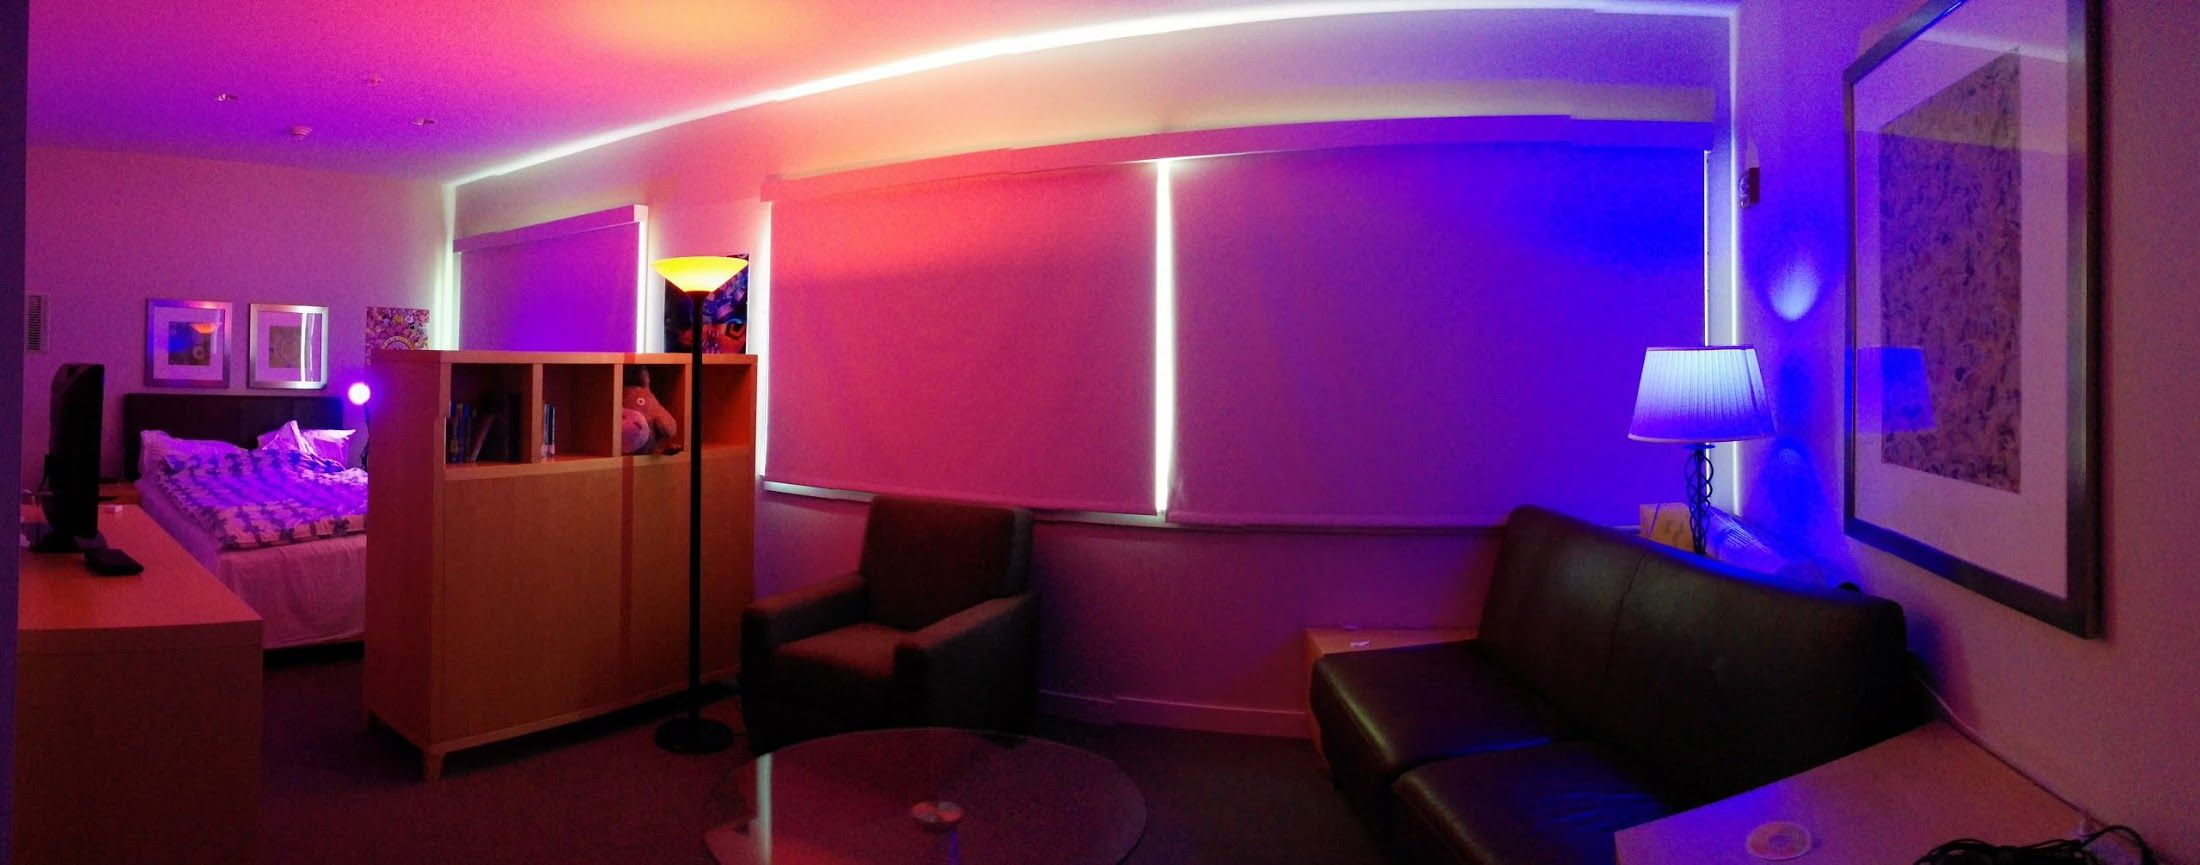 10+ Best Philips Hue Living Room